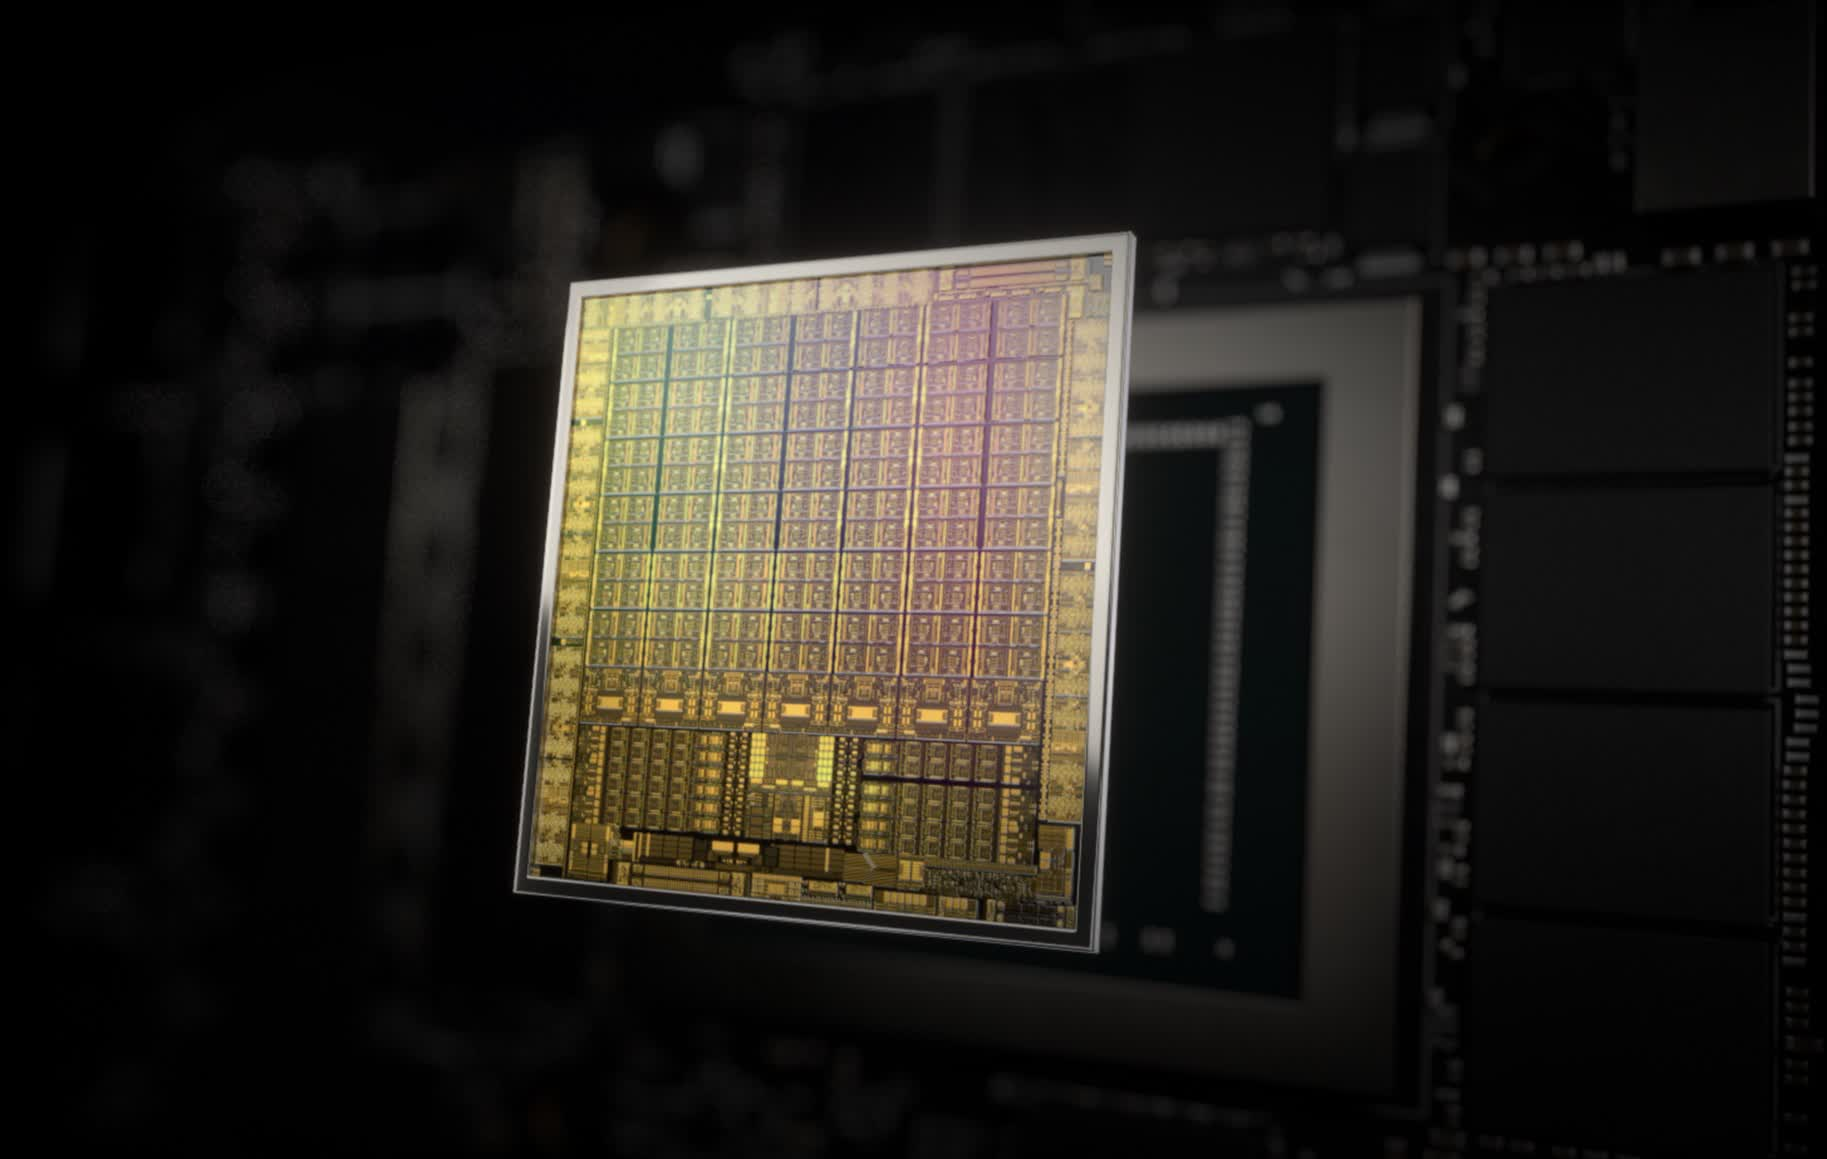 More rumors suggest Nvidia Lovelace a.k.a. RTX 4000 series will use TSMC N5